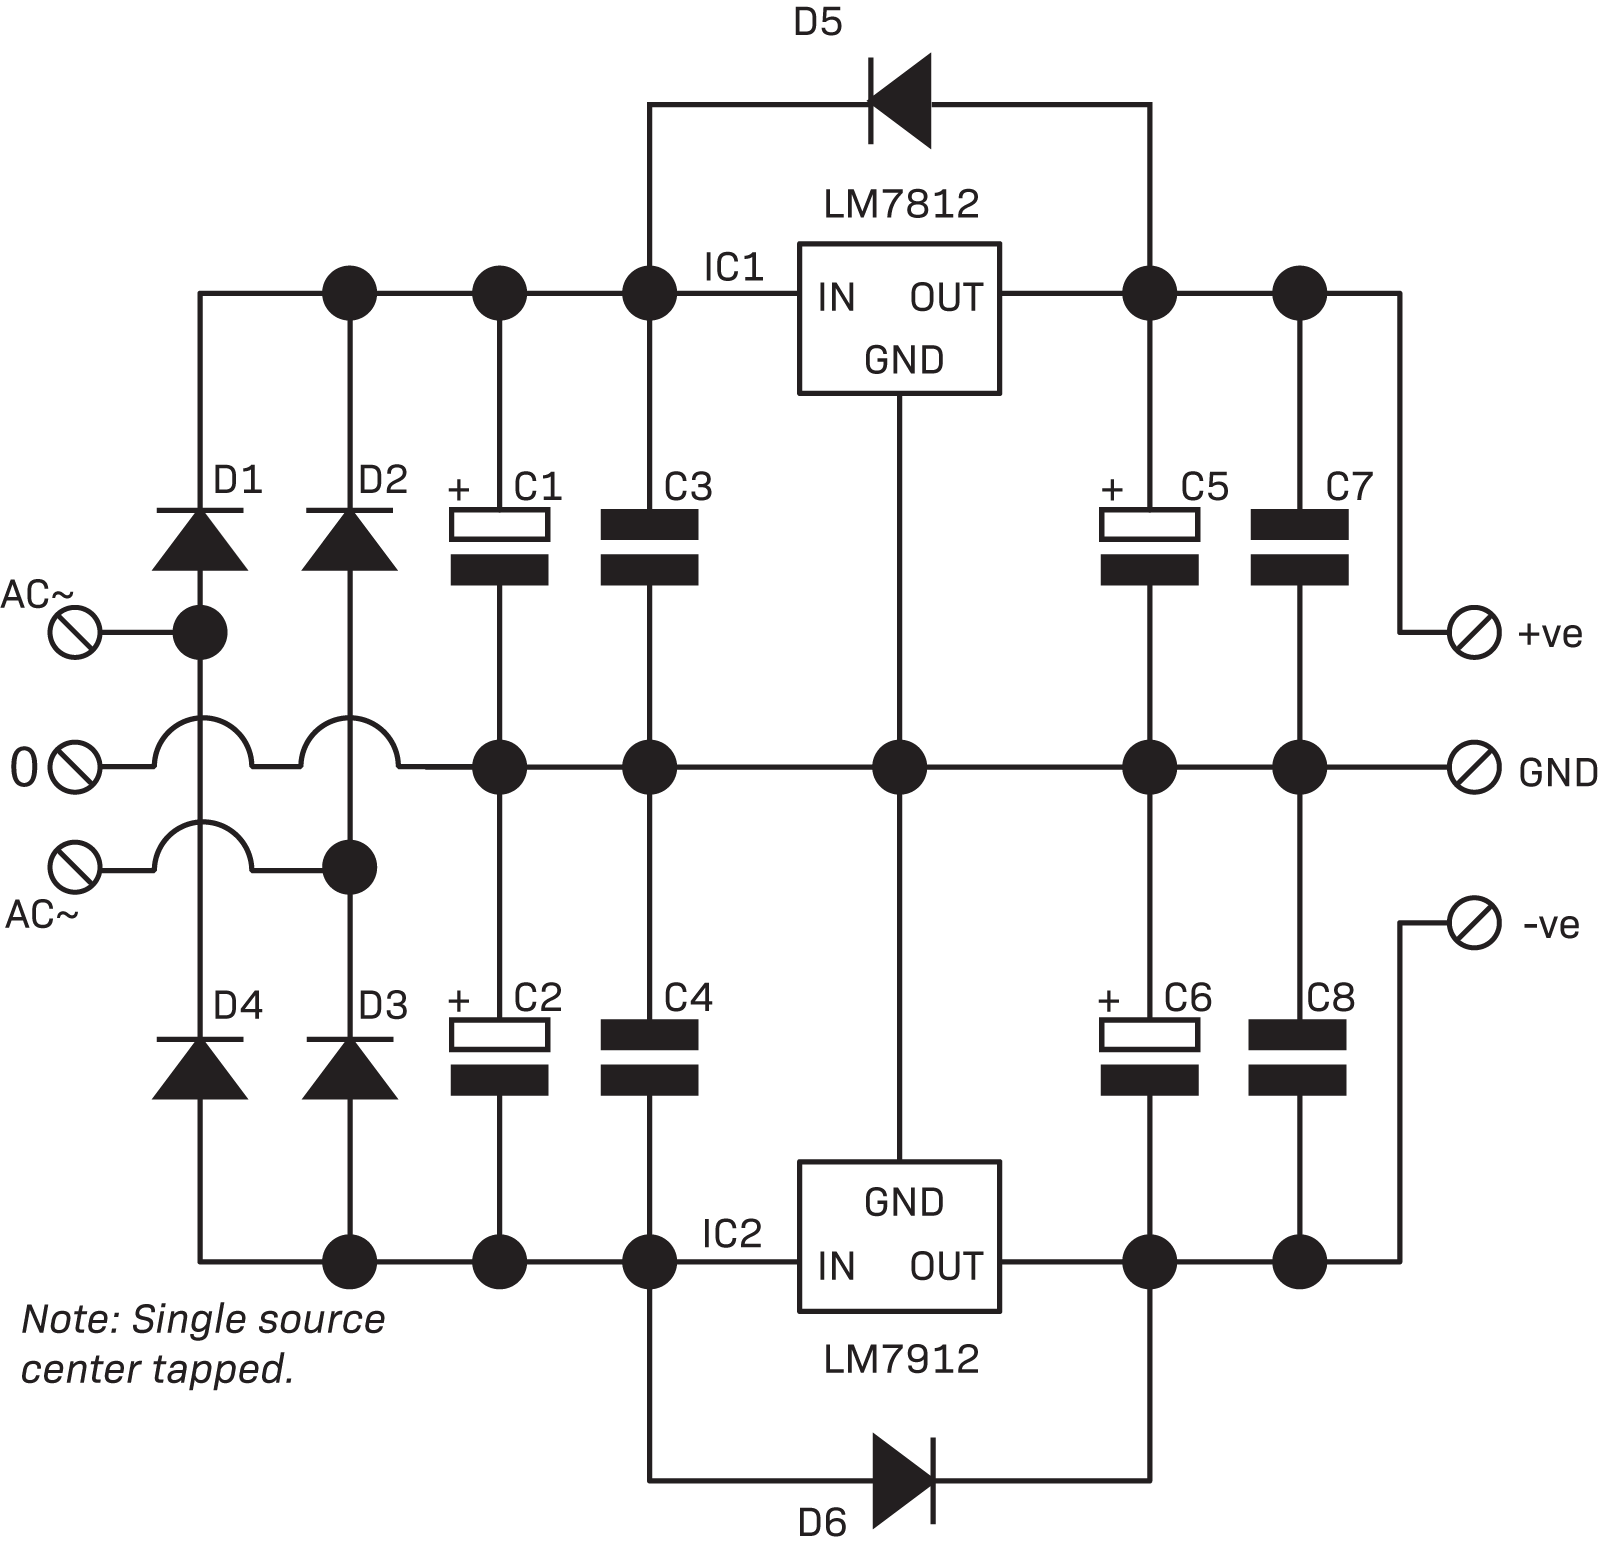 Part 3 The Linear Power Supply Diyode Magazine Adjustable Symmetric Schematic Diagram Supplies Connected Together 2 Circuit Is Useful For Op Amps And Devices Requiring 12vdc